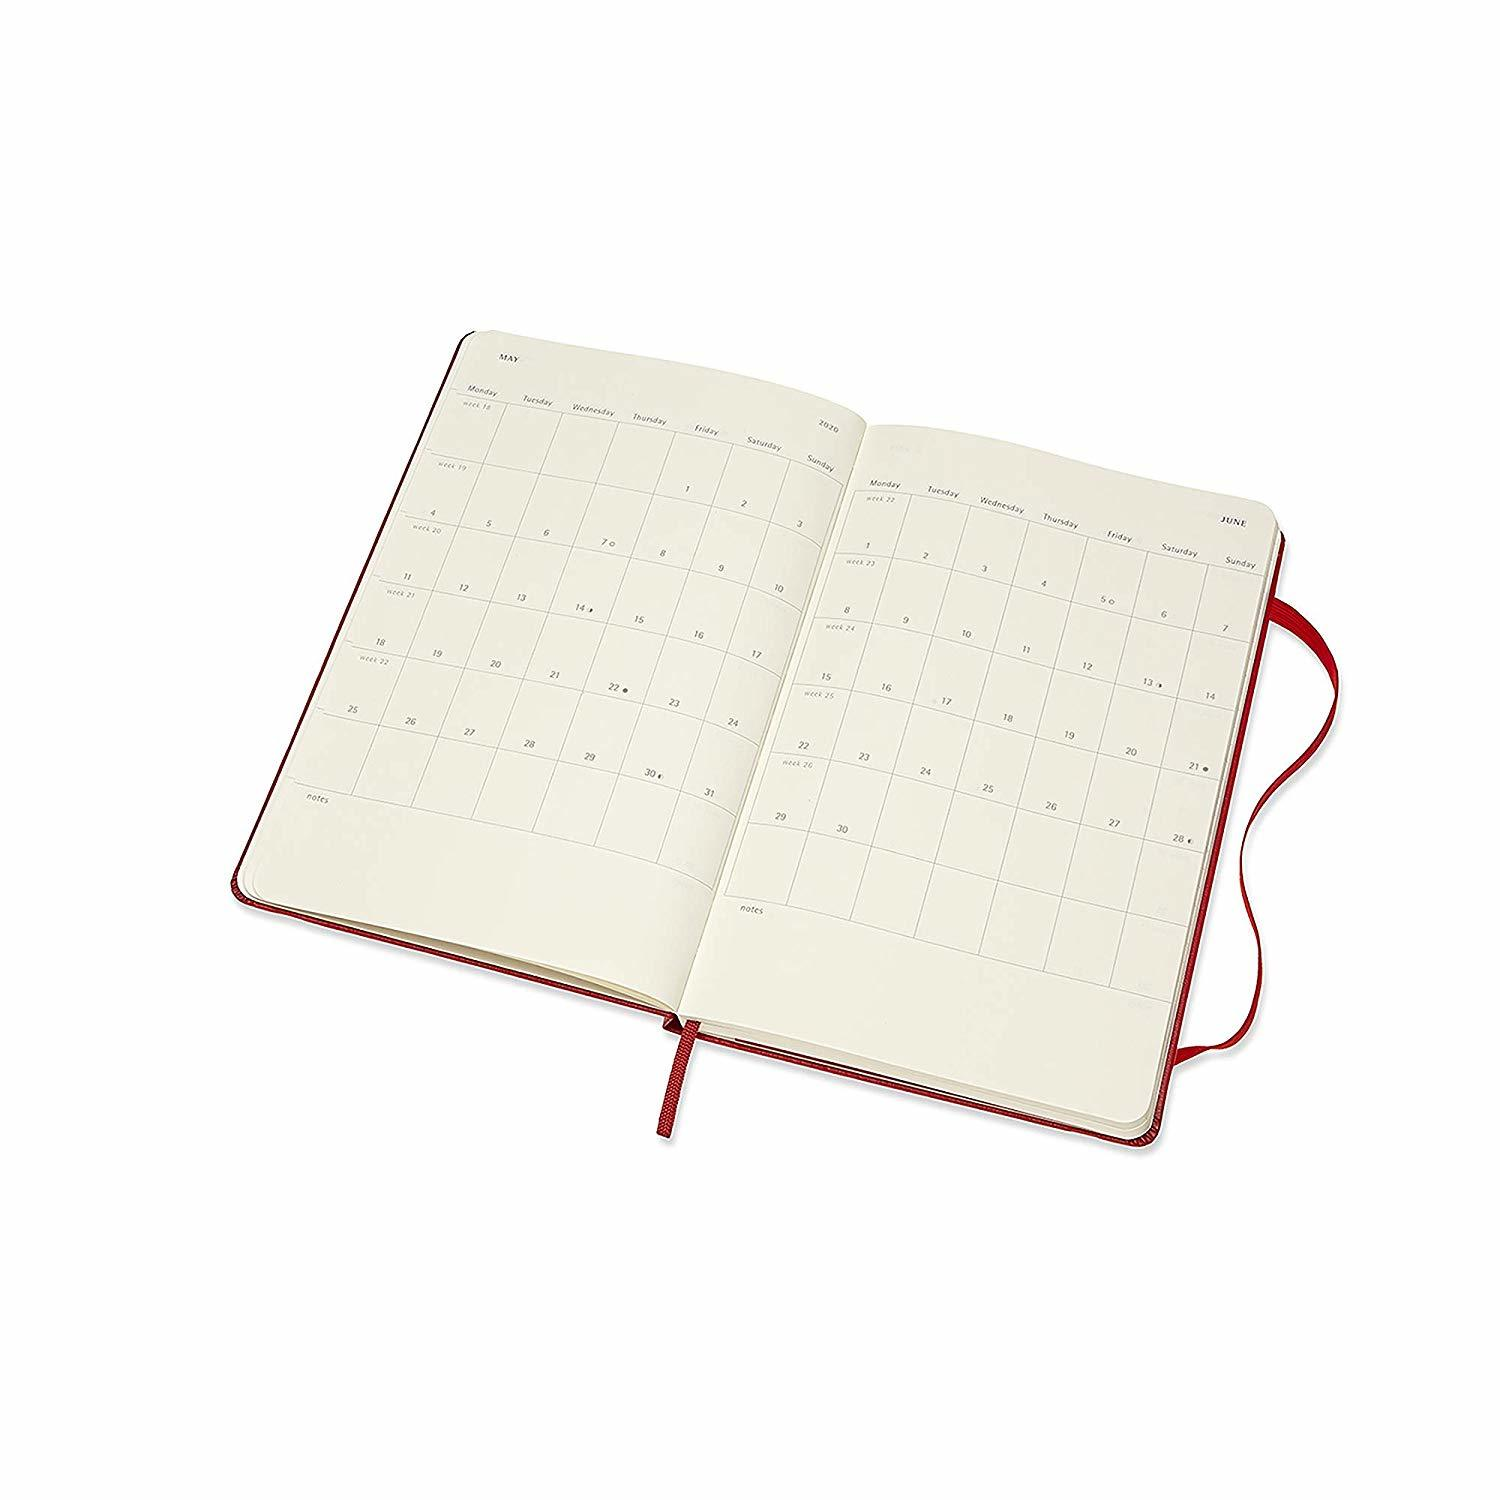 Moleskine: 2020 Diary Large Hard Cover 12 Month Weekly - Scarlet Red image